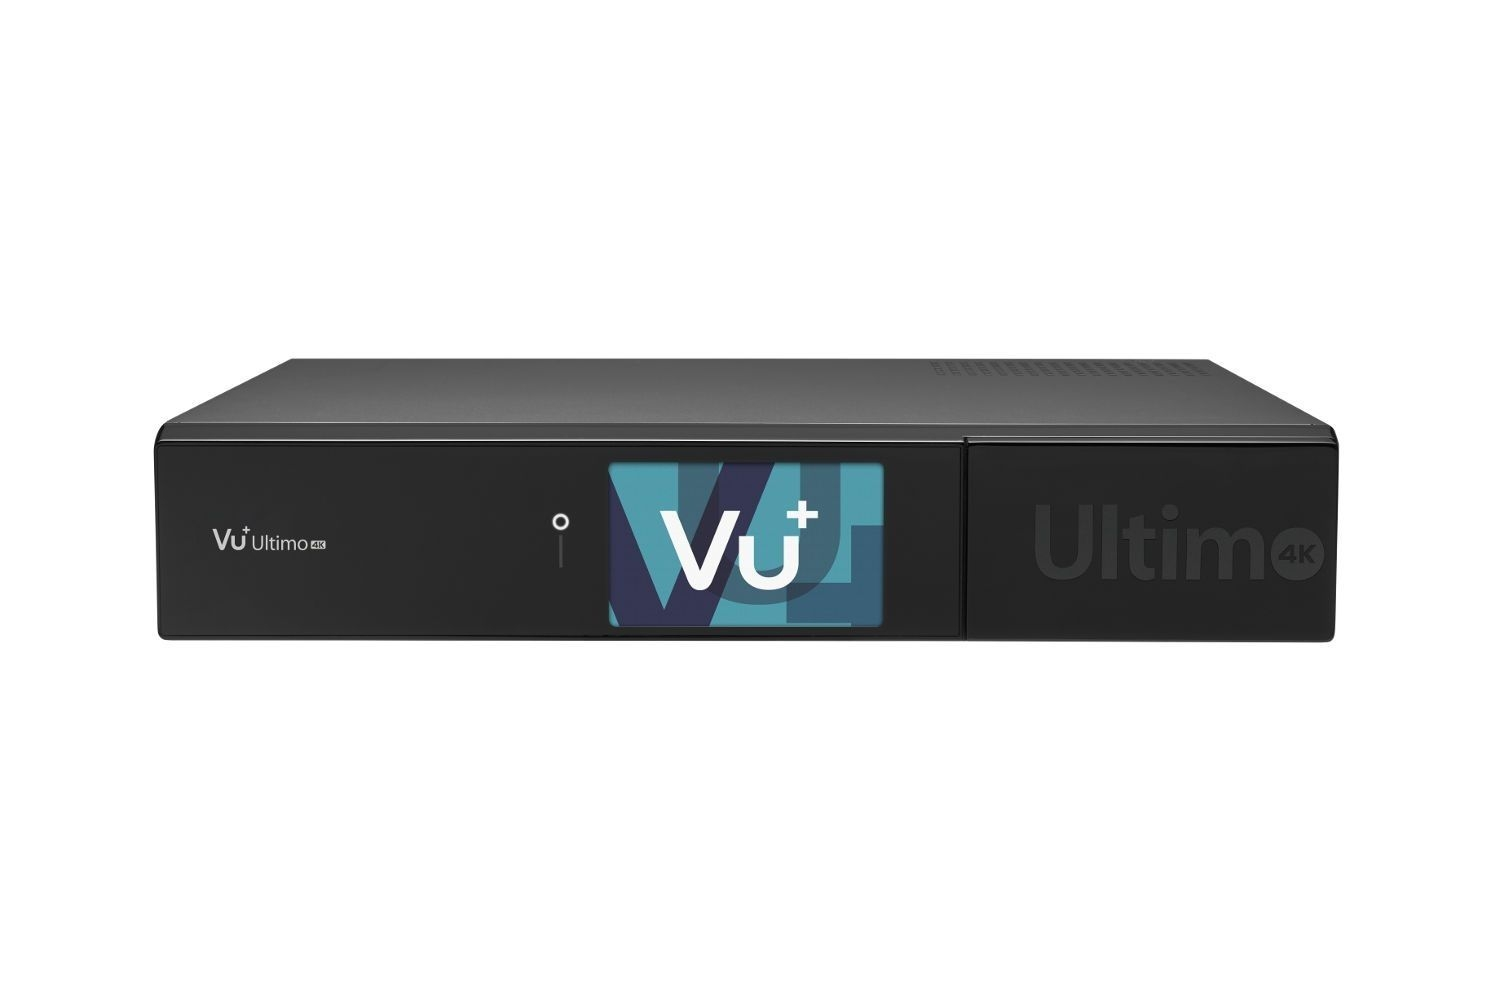 VU+ Ultimo 4K 2x DVB-C FBC / 1x DVB-C/T2 Dual Tuner 3 TB HDD Linux Receiver UHD 2160p